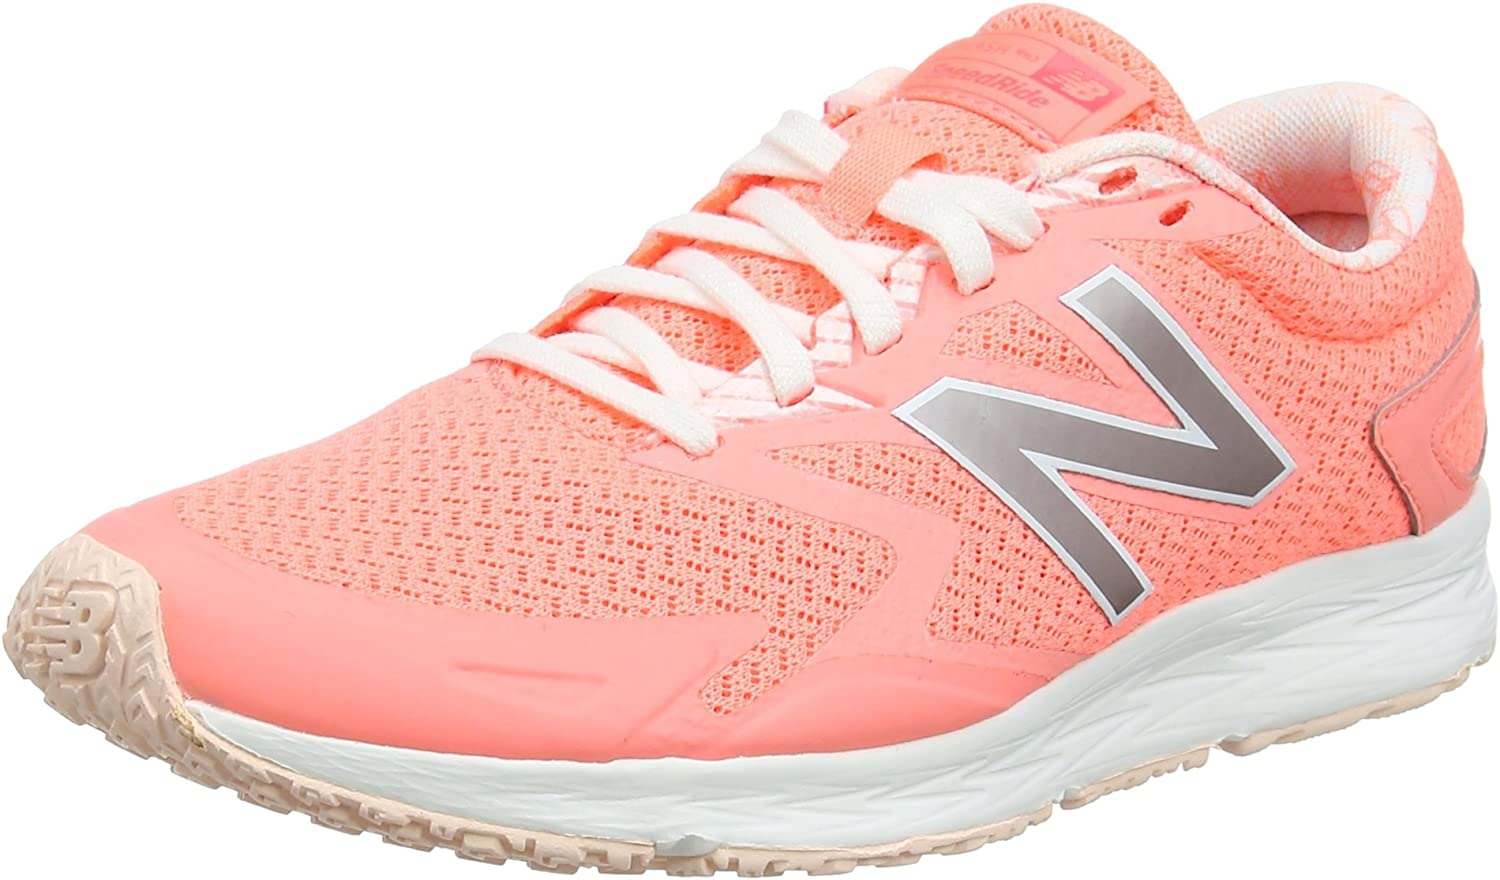 New Balance Flash V2 M, Zapatillas de Running para Mujer: Amazon.es: Zapatos y complementos